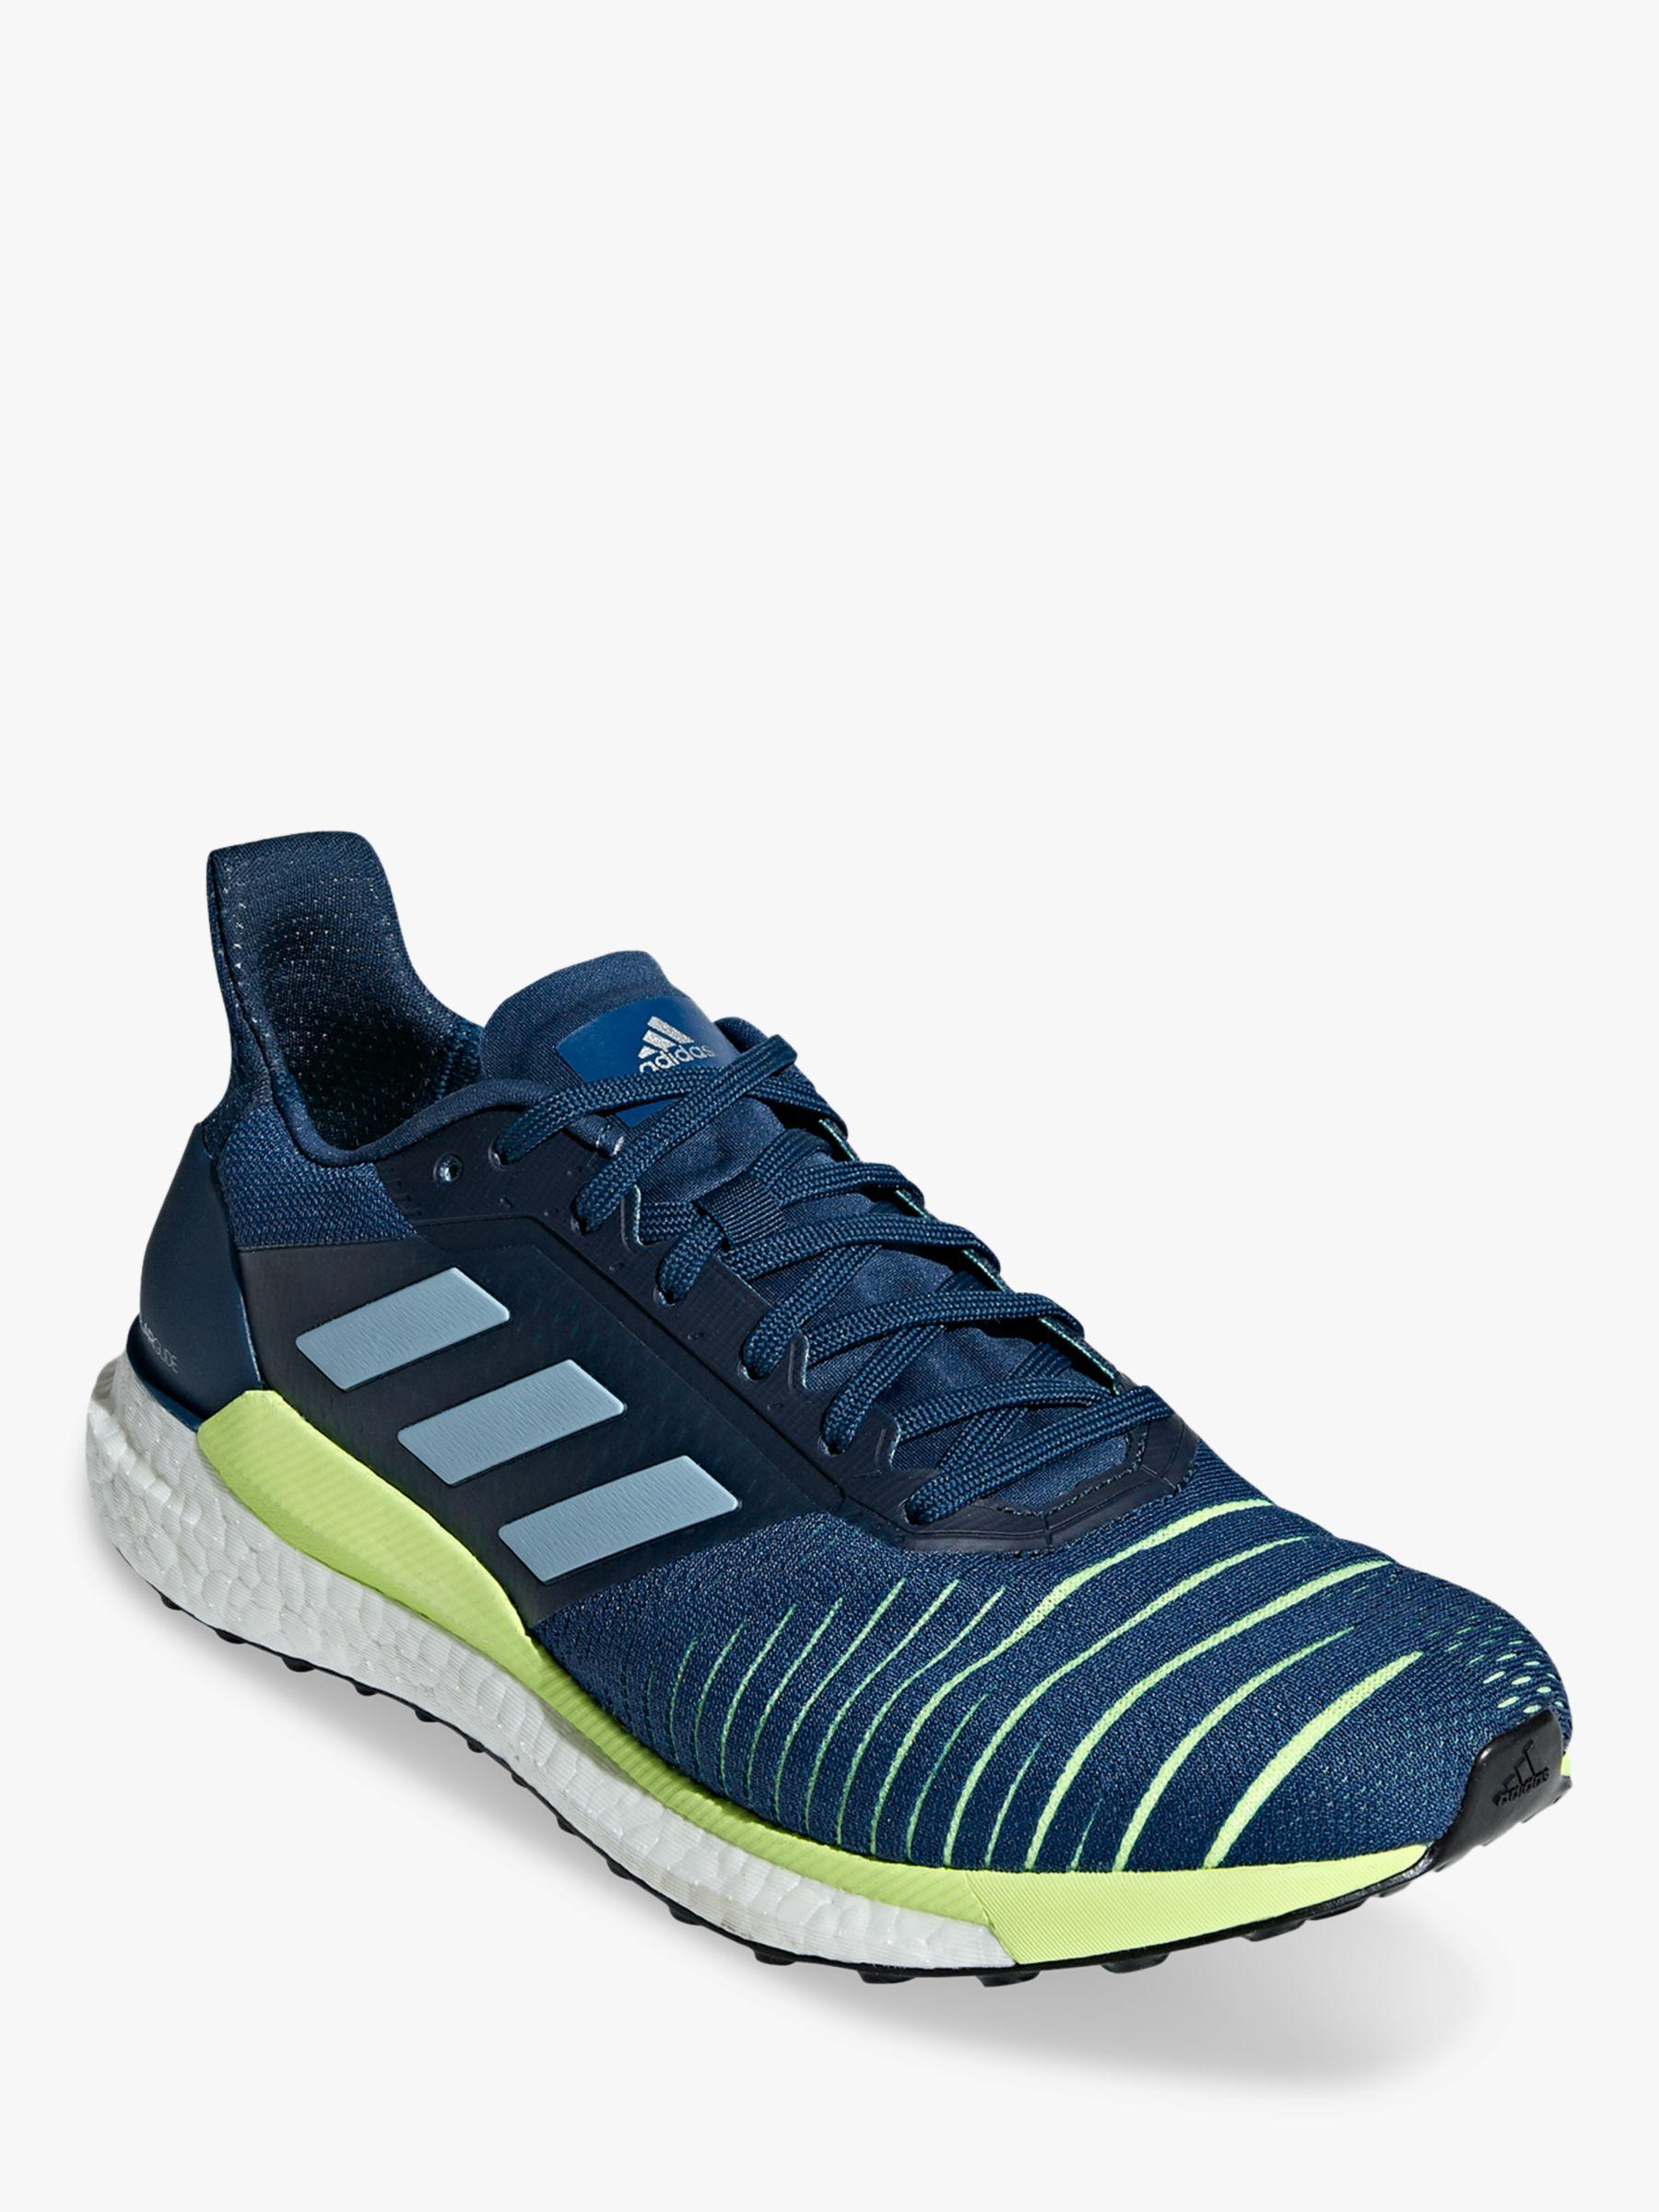 ee34c20ca2eaa adidas Solar Glide Men s Running Shoes in Blue for Men - Lyst